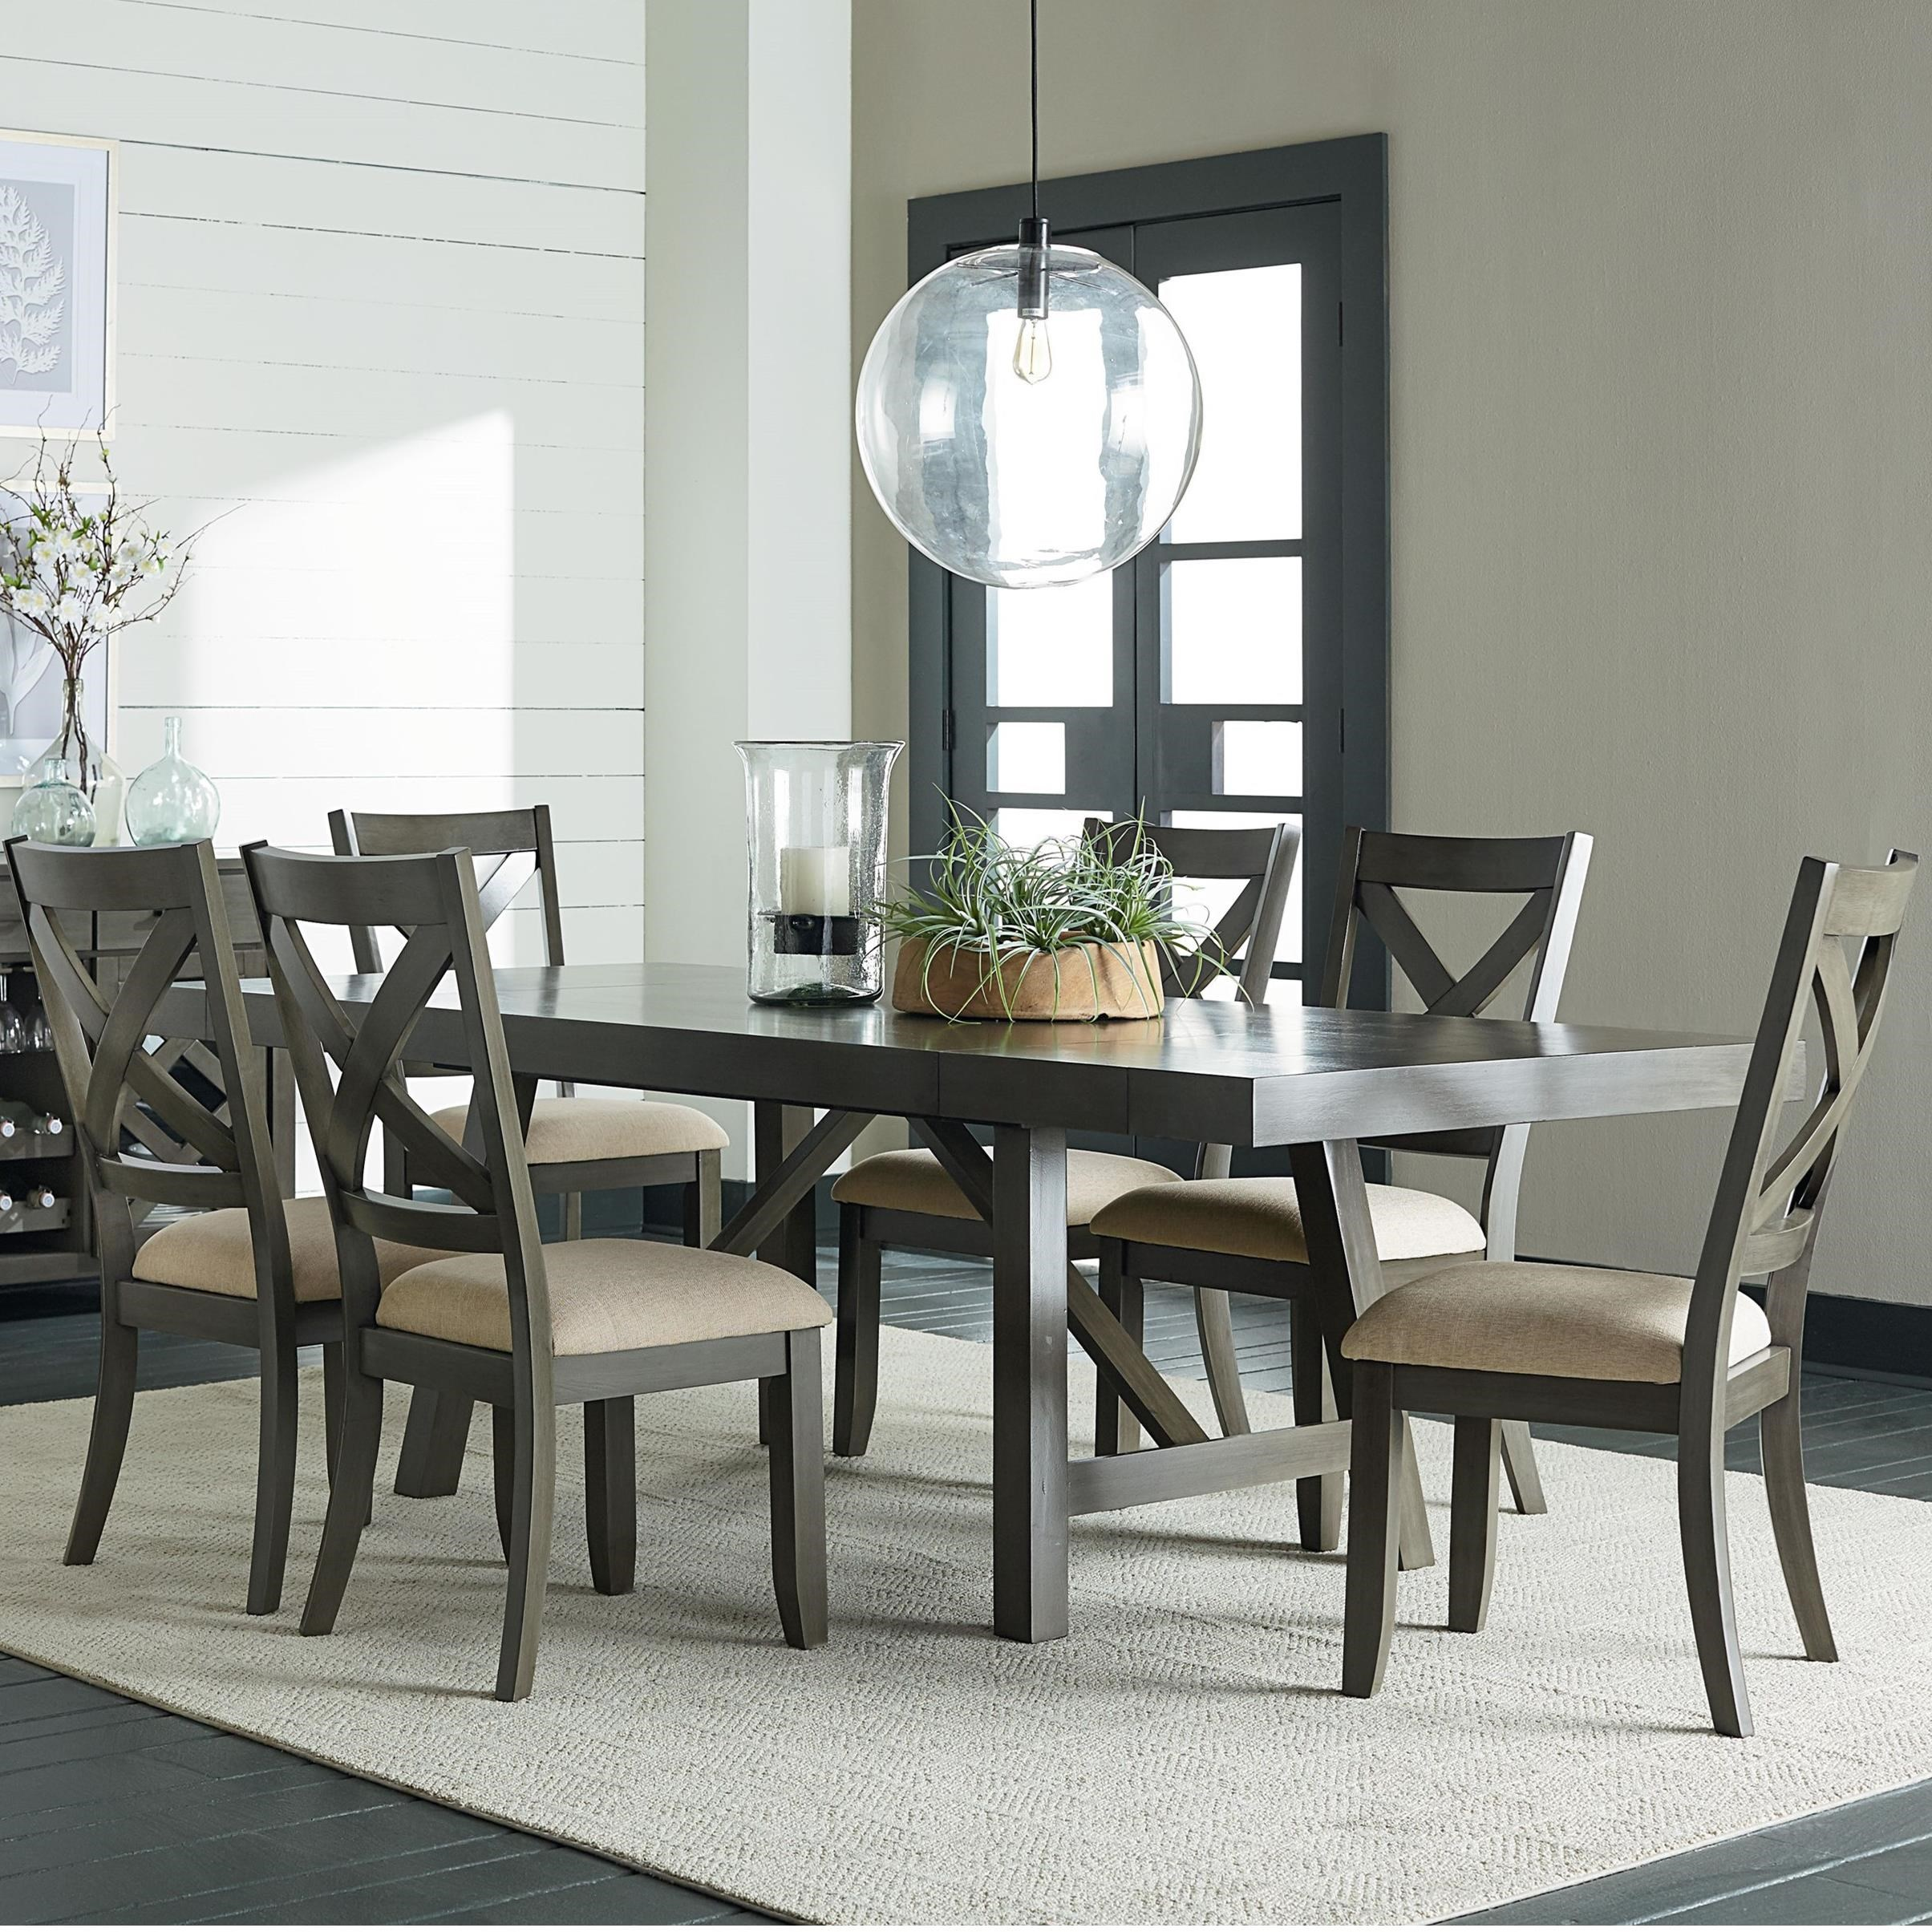 Standard furniture omaha grey 7 piece trestle table dining for Trestle dining room sets